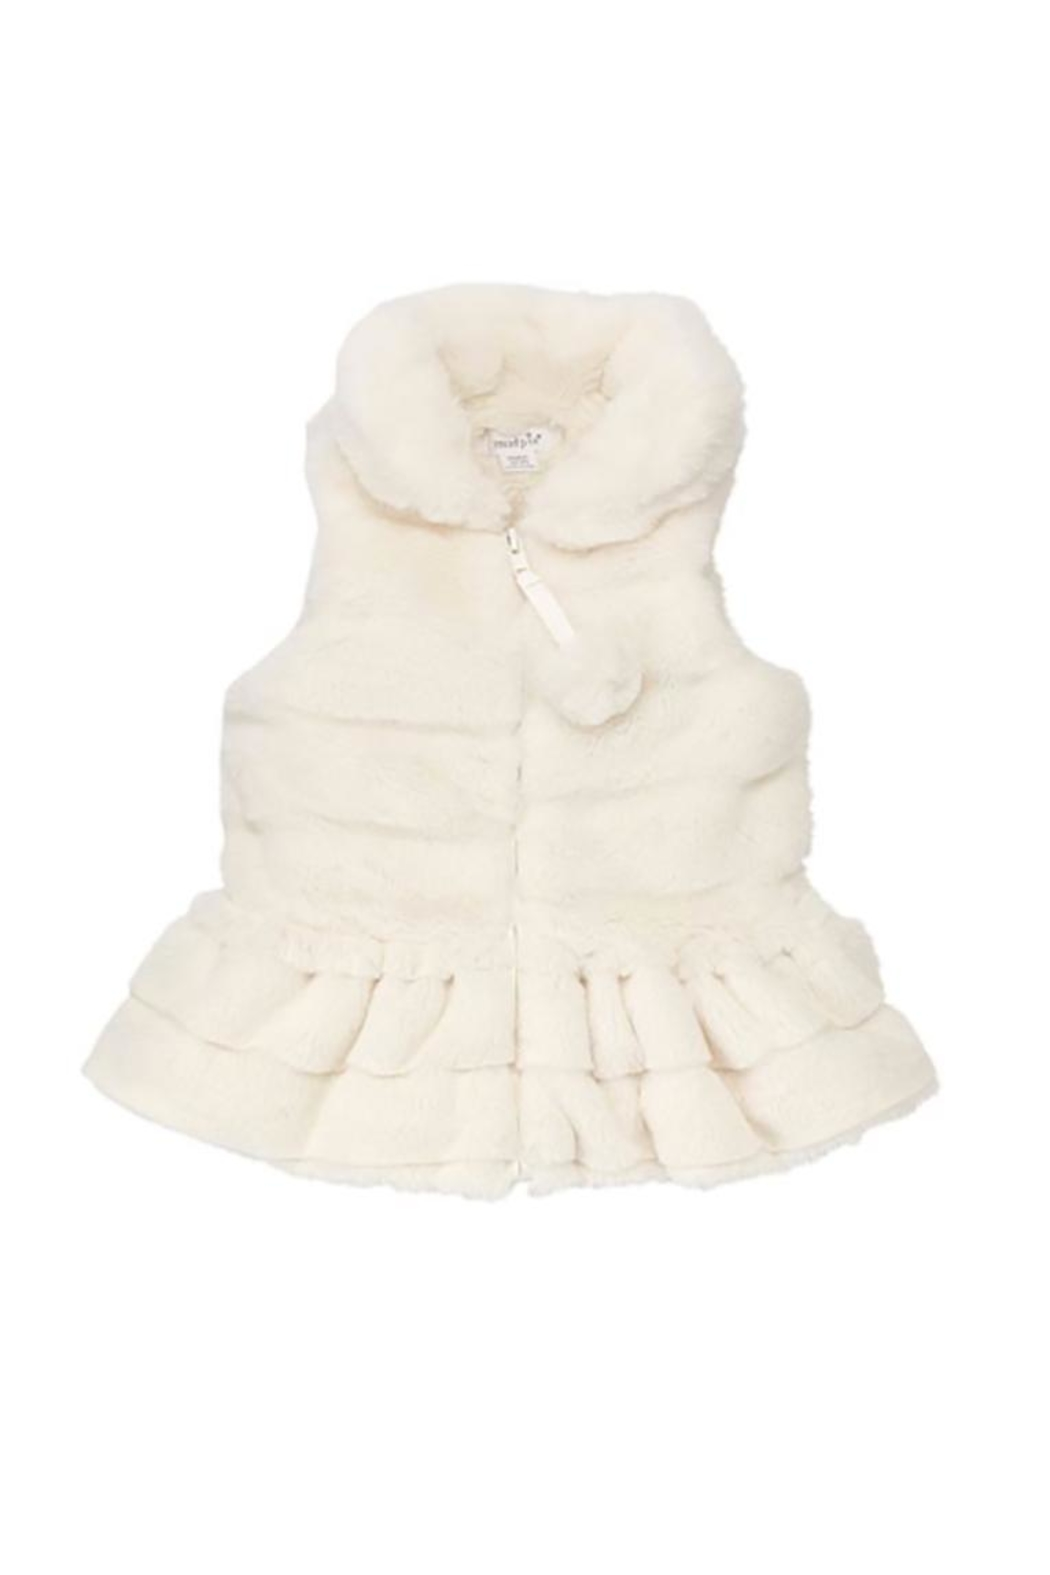 Mud Pie Ivory Fur Vest - Main Image